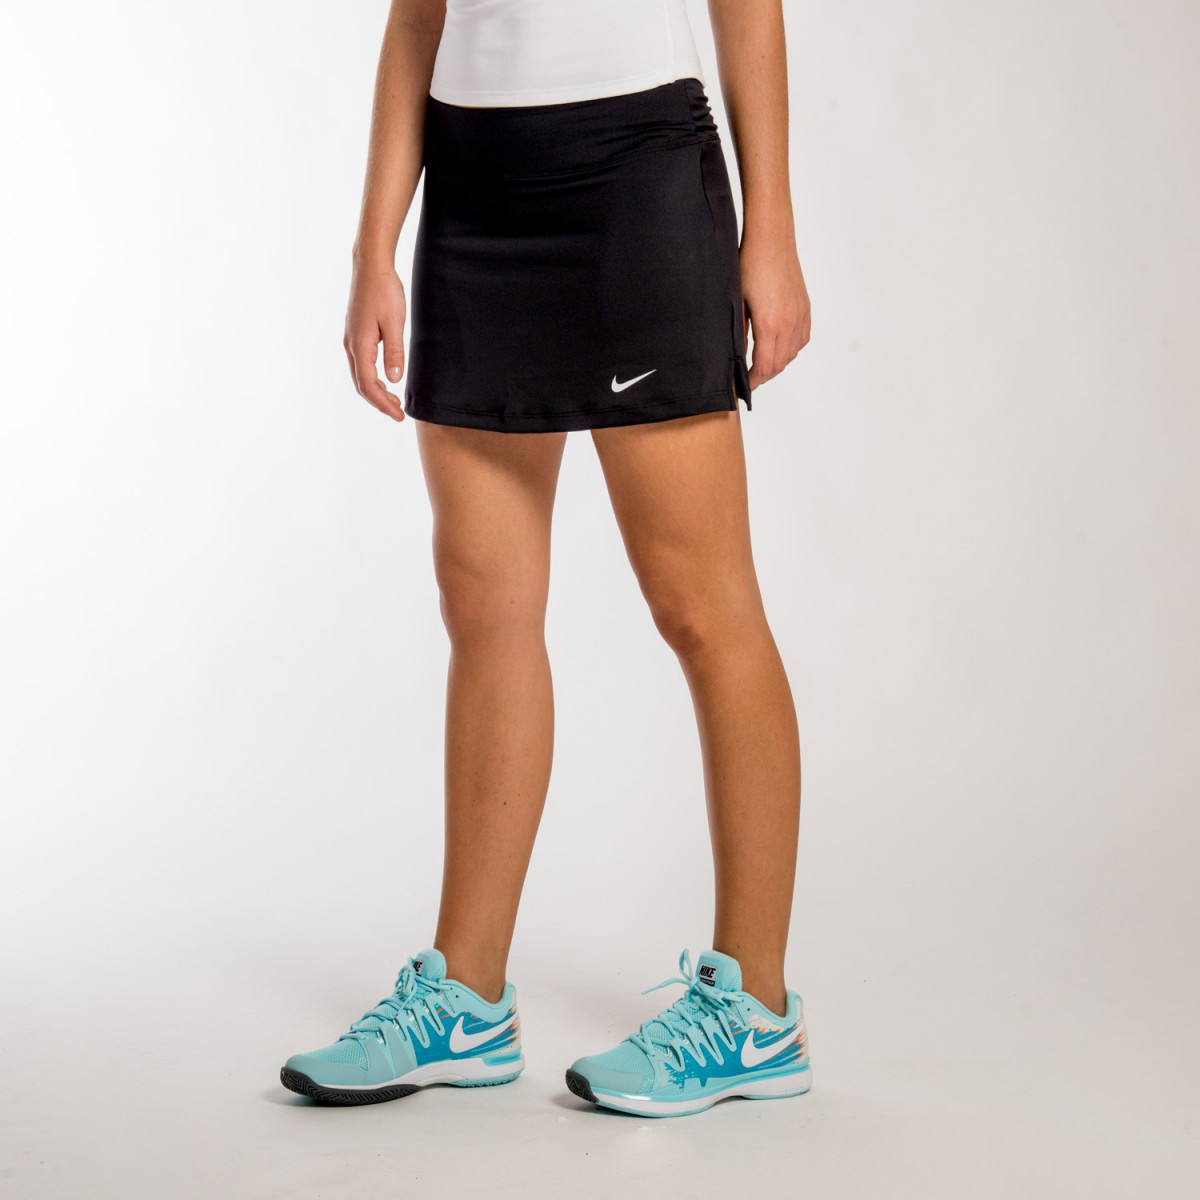 POLLERA NIKE EM STRAIGHT KNIT SKIRT